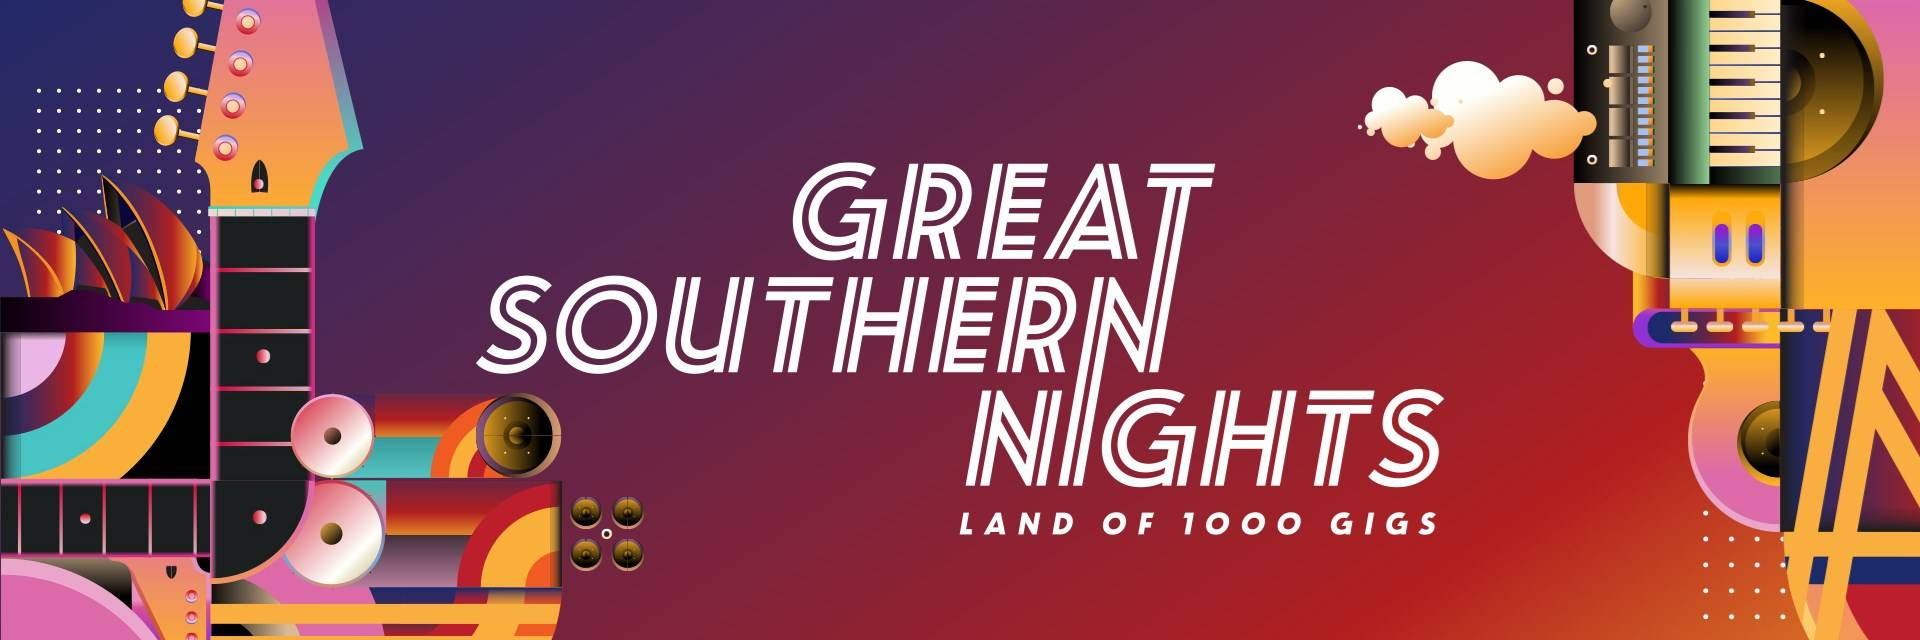 Great Southern Nights Home Page Banner